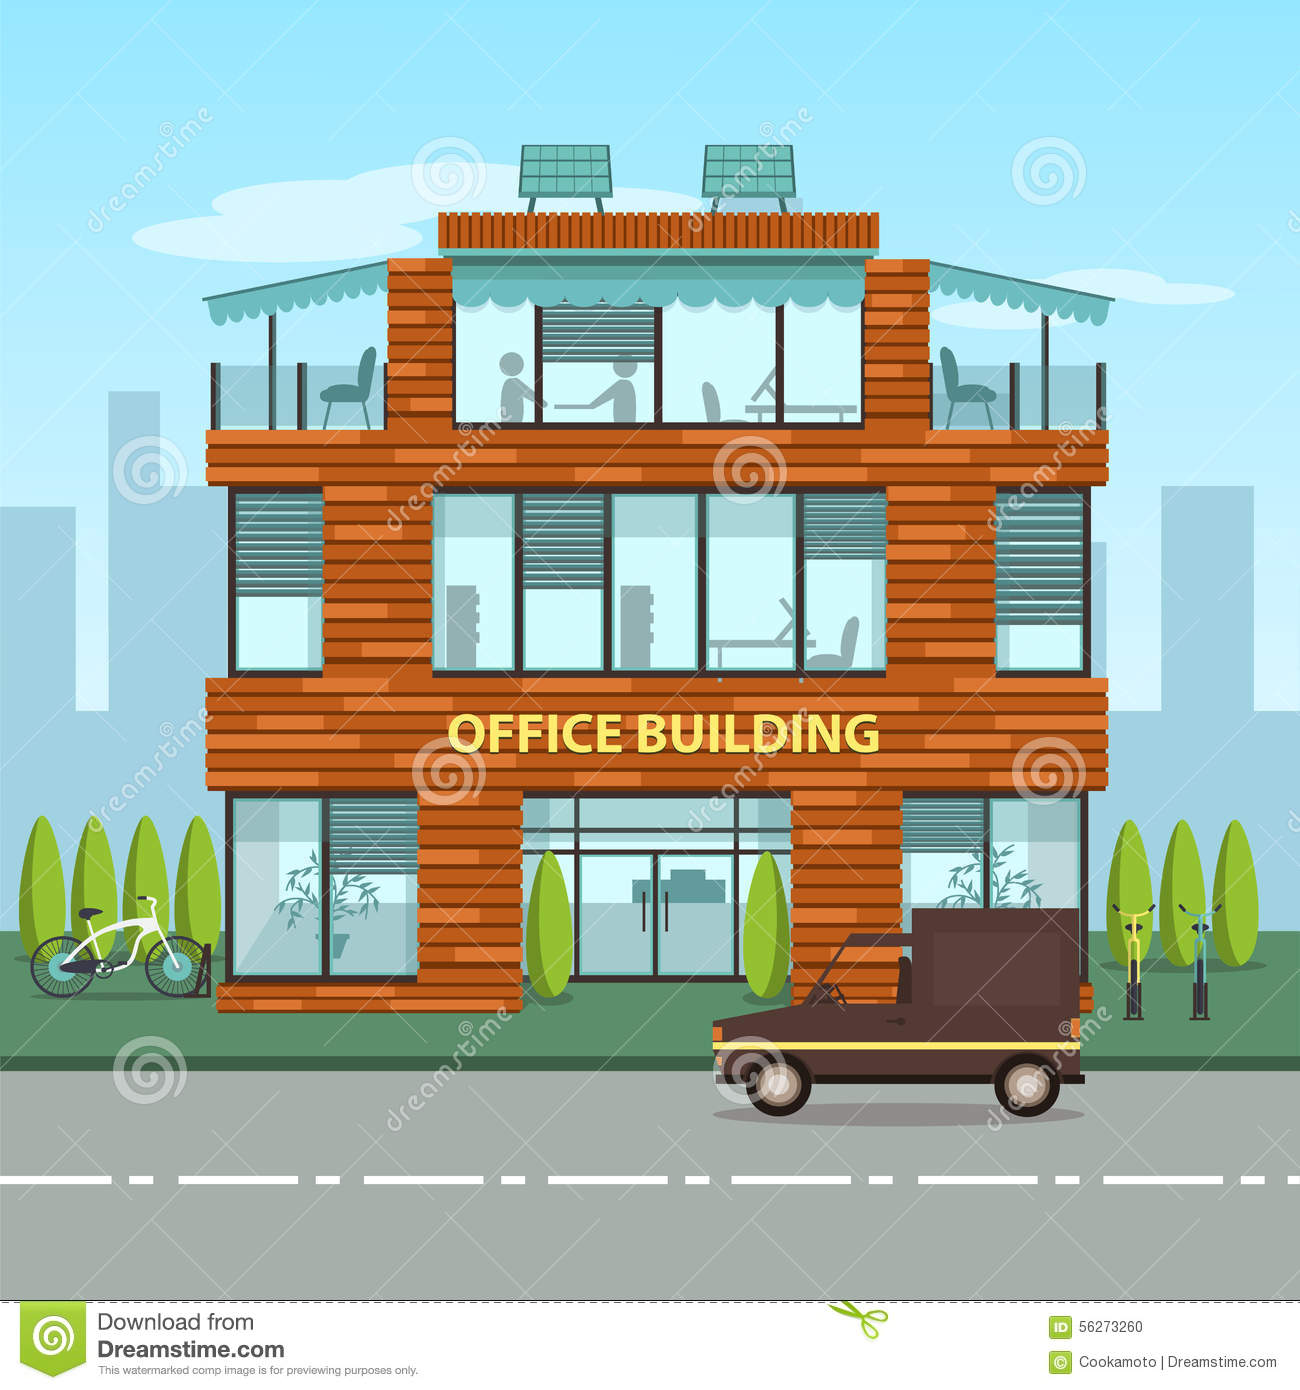 Modern Office Building In Cartoon Flat Style Stock Vector